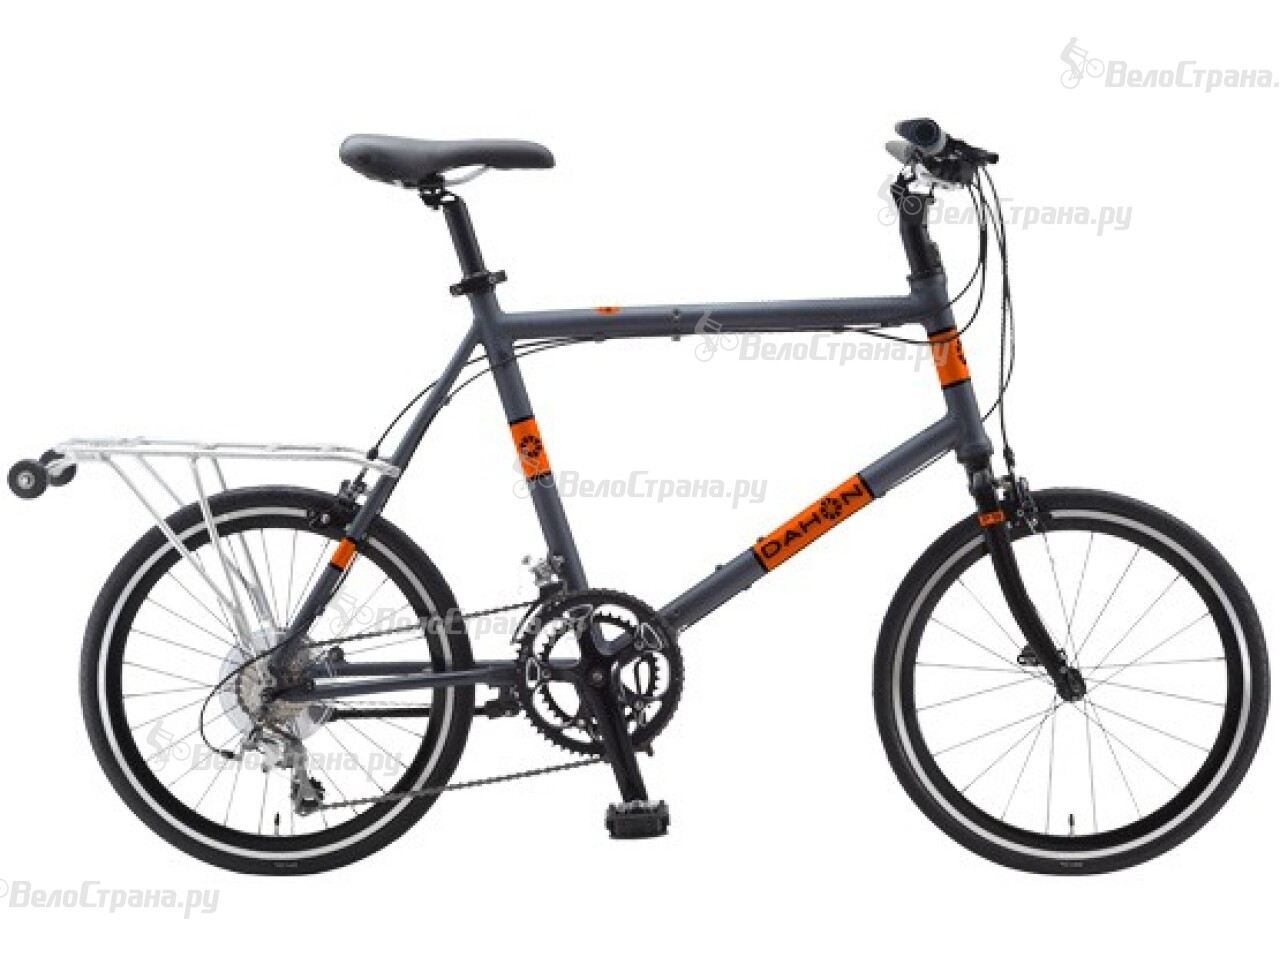 Велосипед Dahon Dash D18 (2015) велосипед dahon speed d7 2016